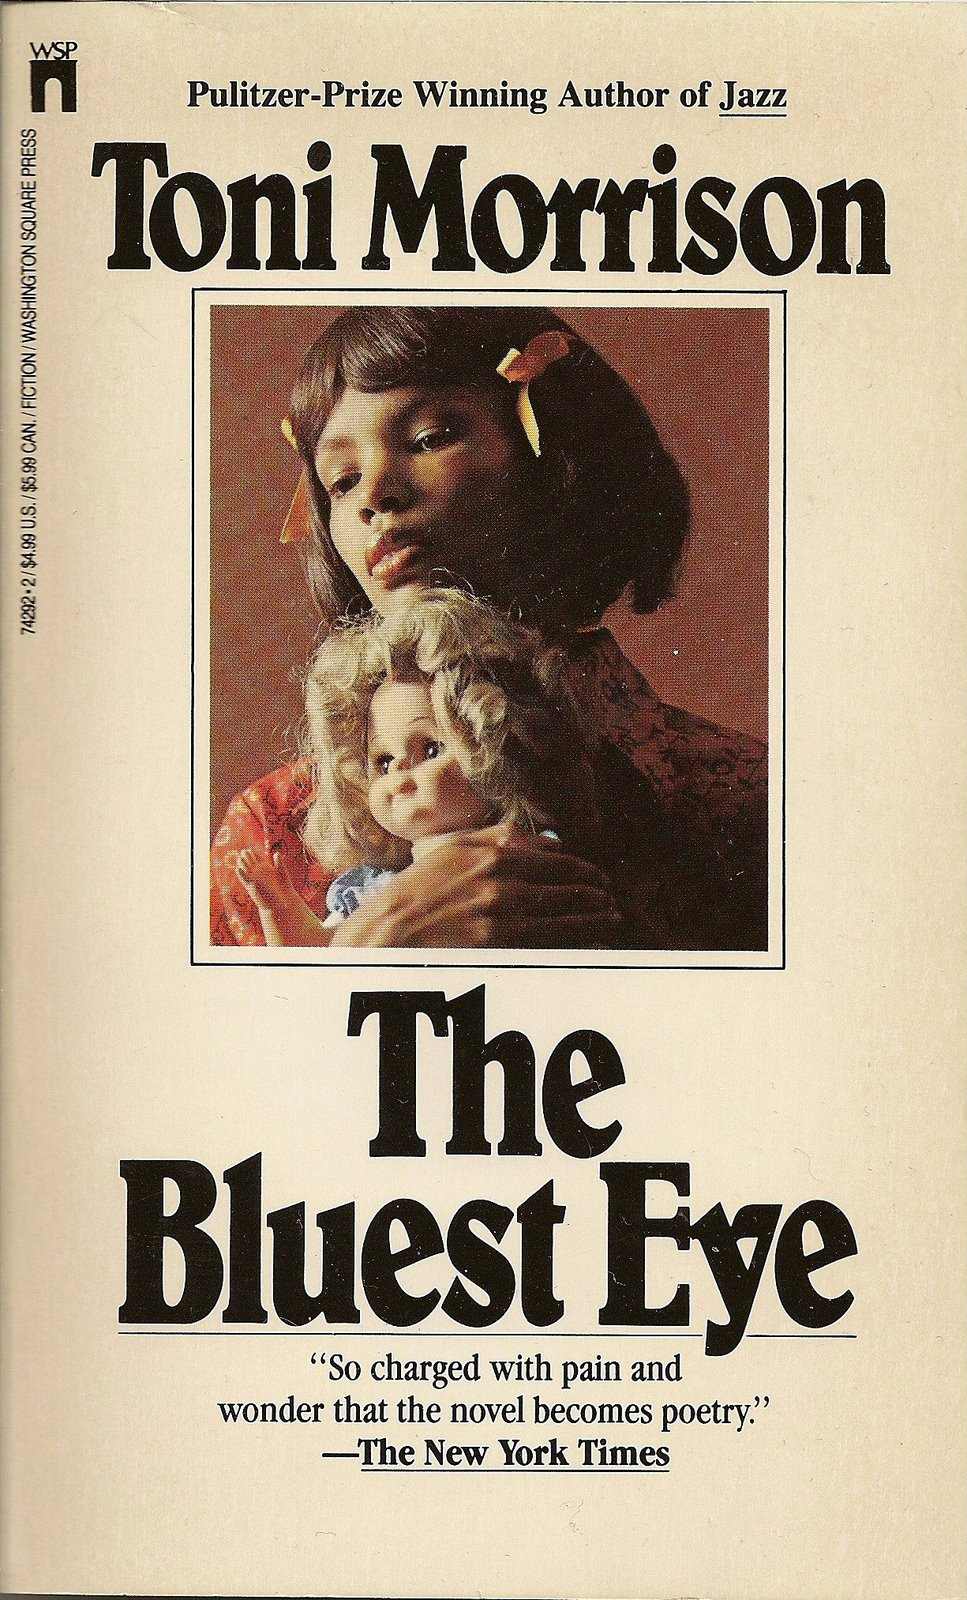 an analysis of the theme of racism in the bluest eye a novel by toni morrison Bluest eye toni morrison bluest eye literature essays are academic essays for citation these papers were written primarily by students and provide critical analysis of bluest eye.